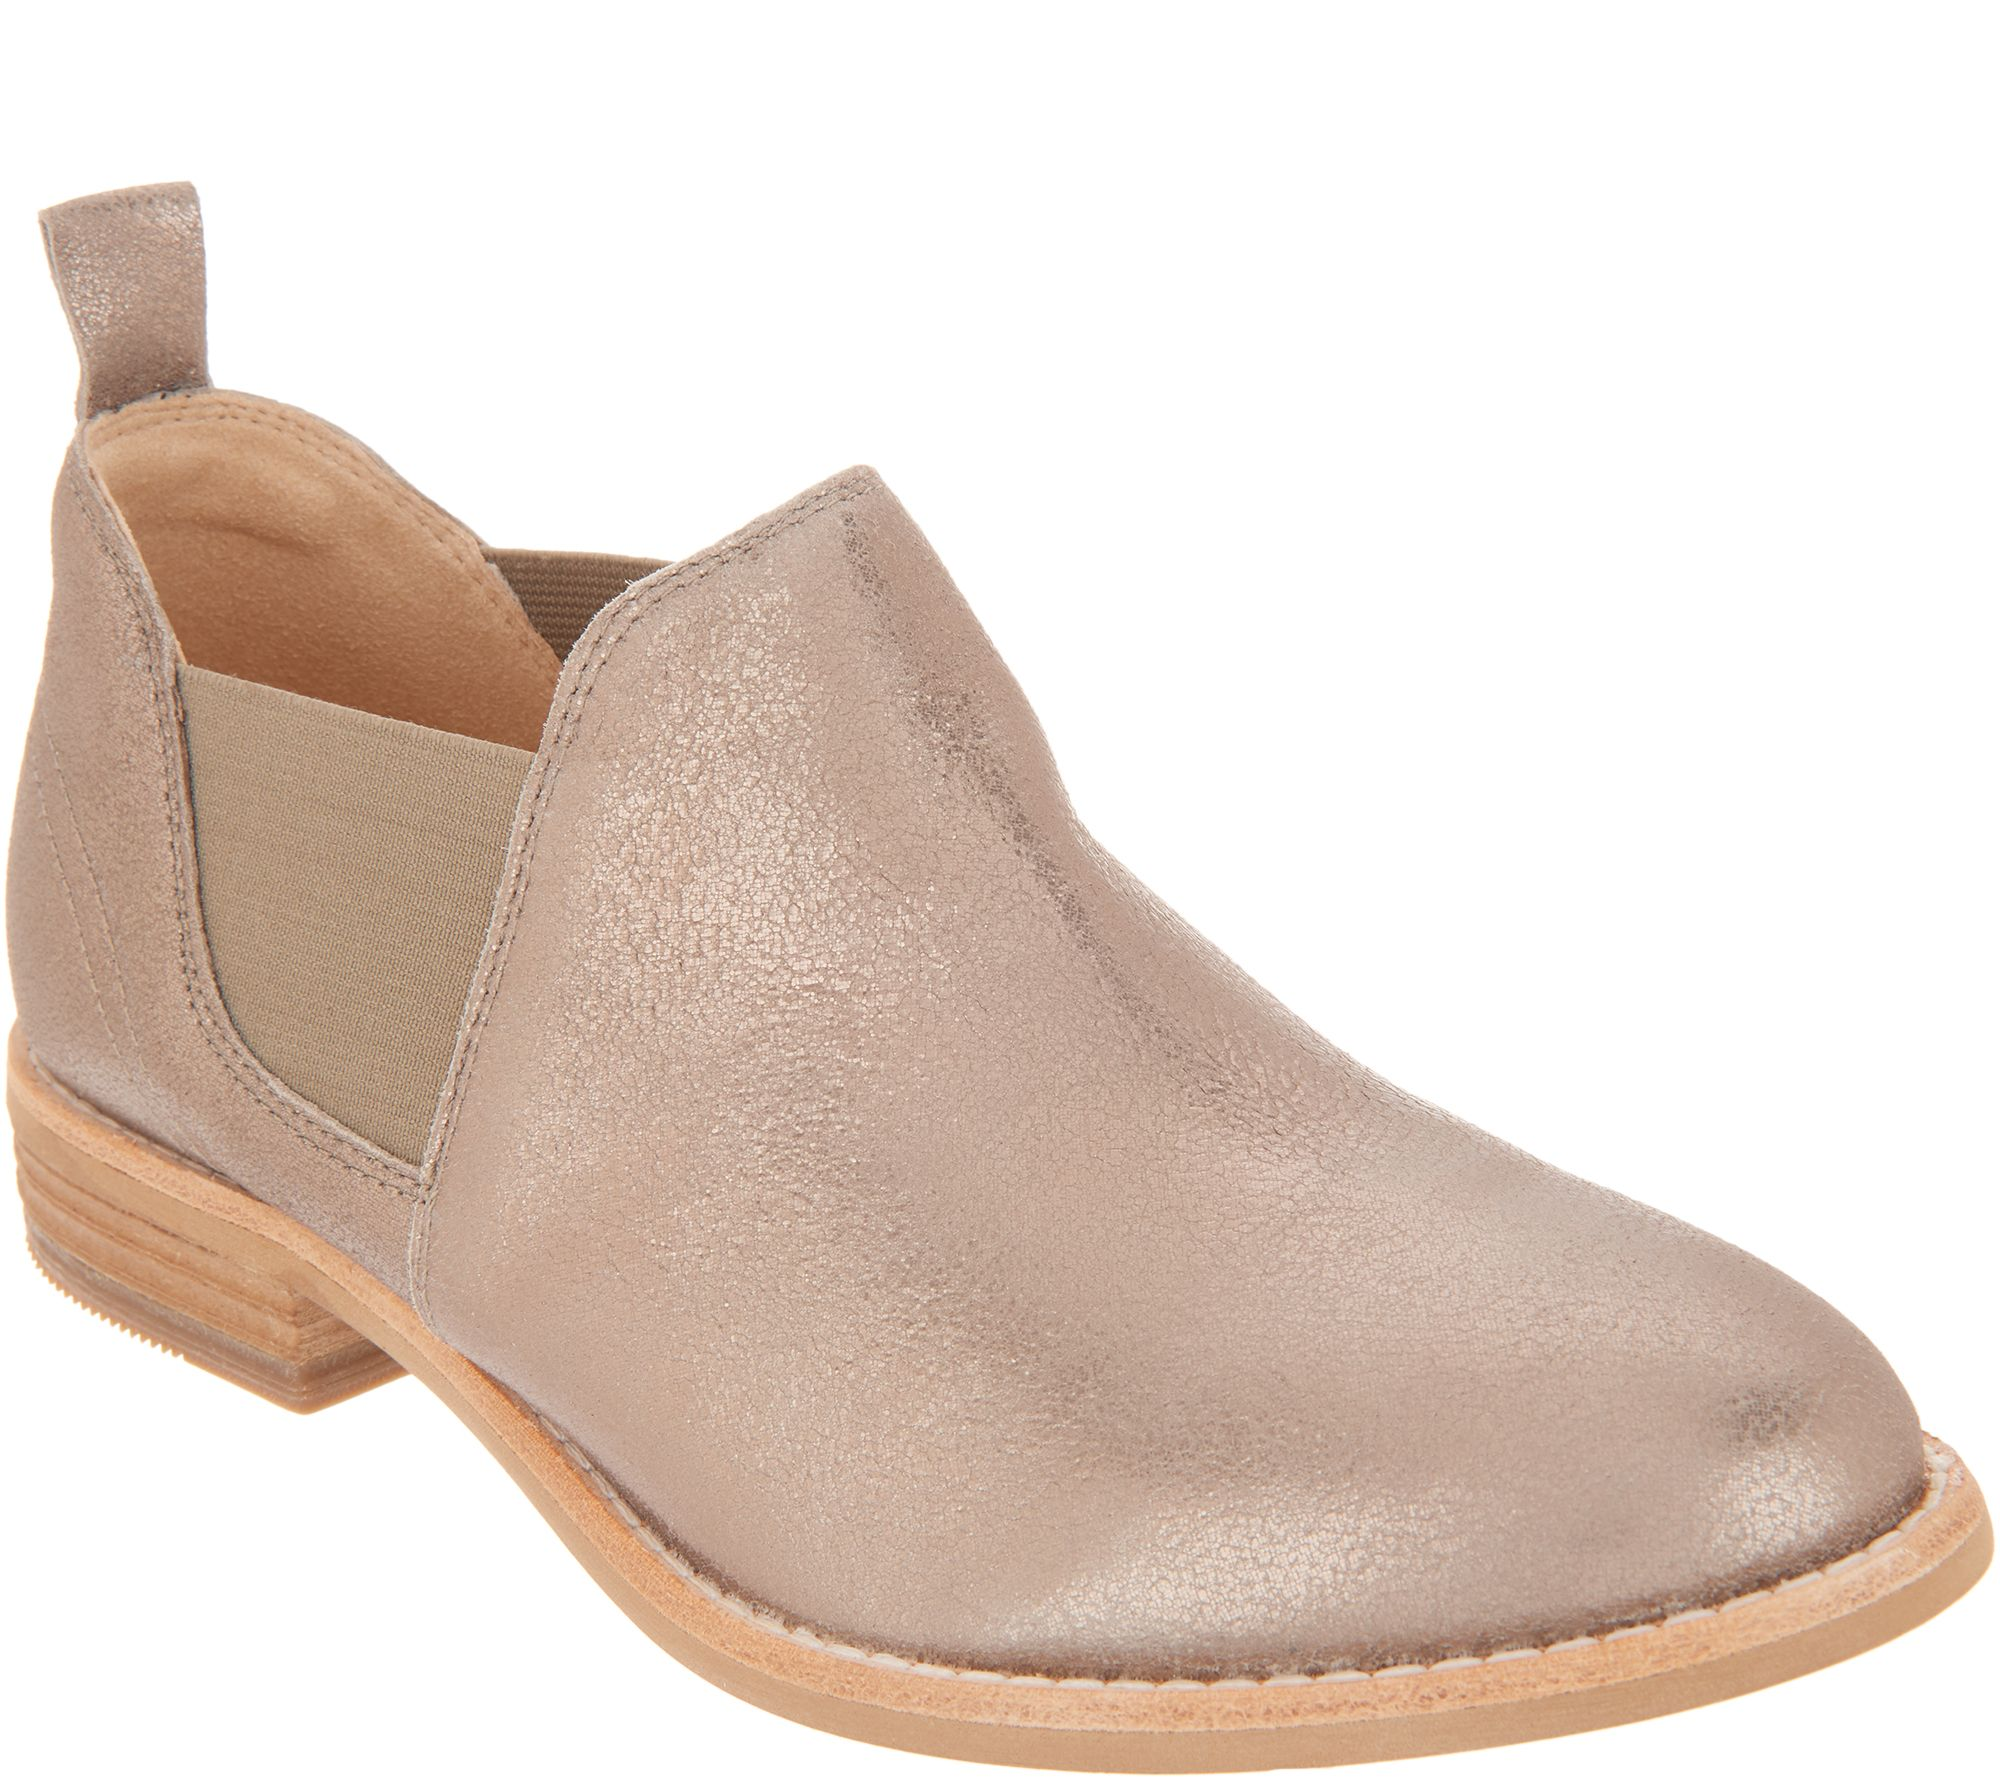 entire collection great deals on fashion new varieties Clarks Leather Slip-on Booties - Edenvale Page — QVC.com